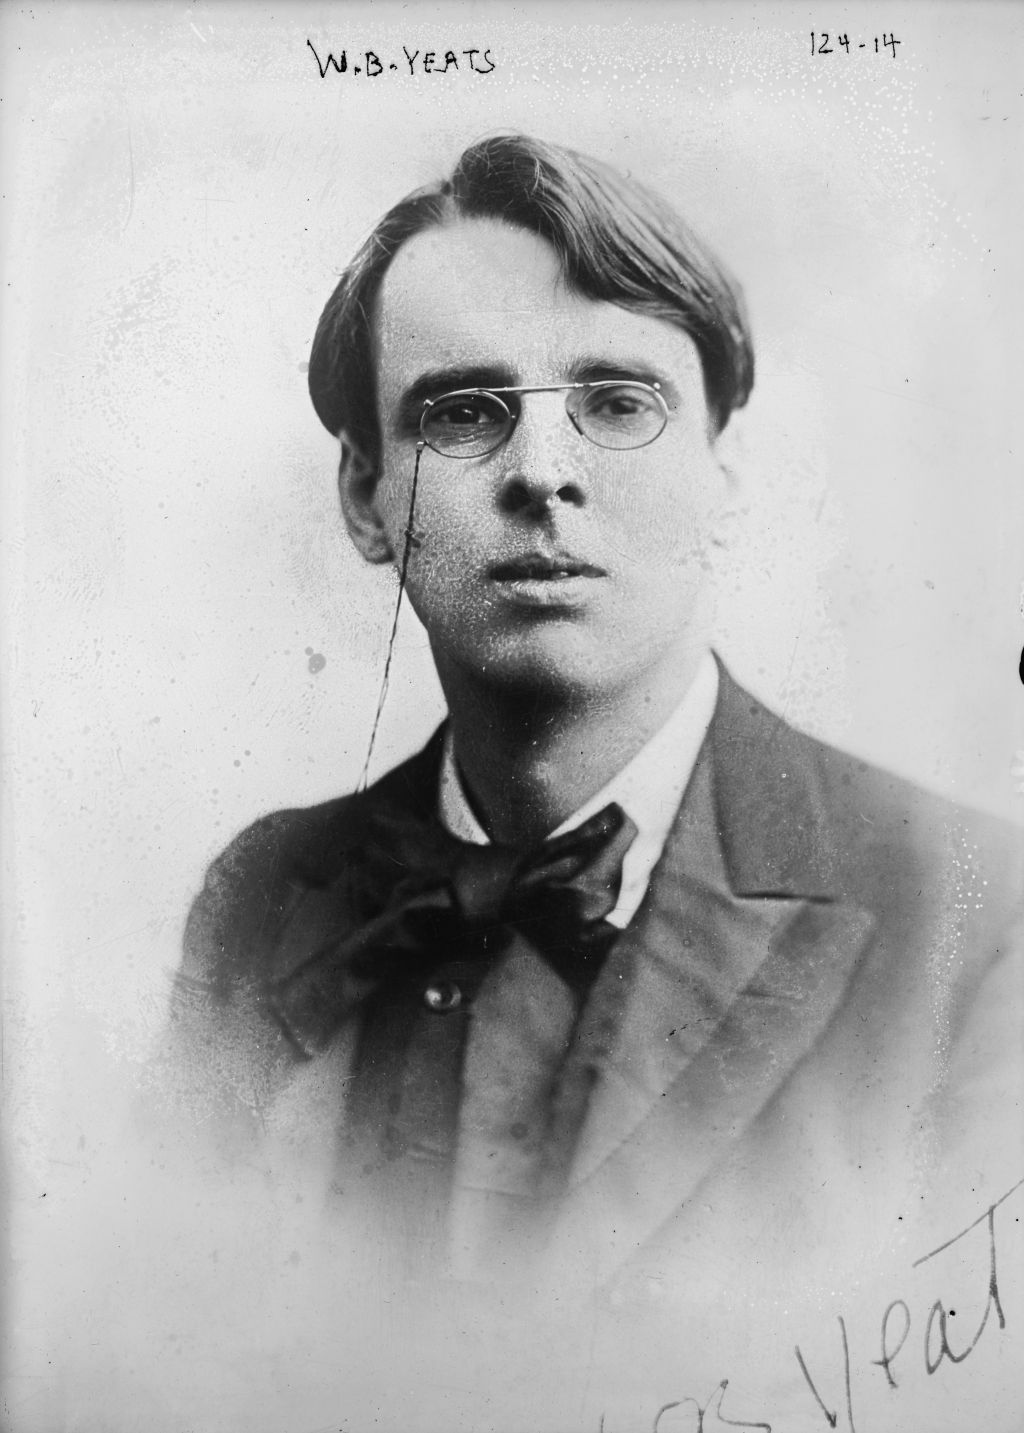 yeats byzantium analysis Sailing to byzantium is a poem by william butler yeats, first published in 1928 it uses a journey to constantinople (byzantium) as a metaphor for a.